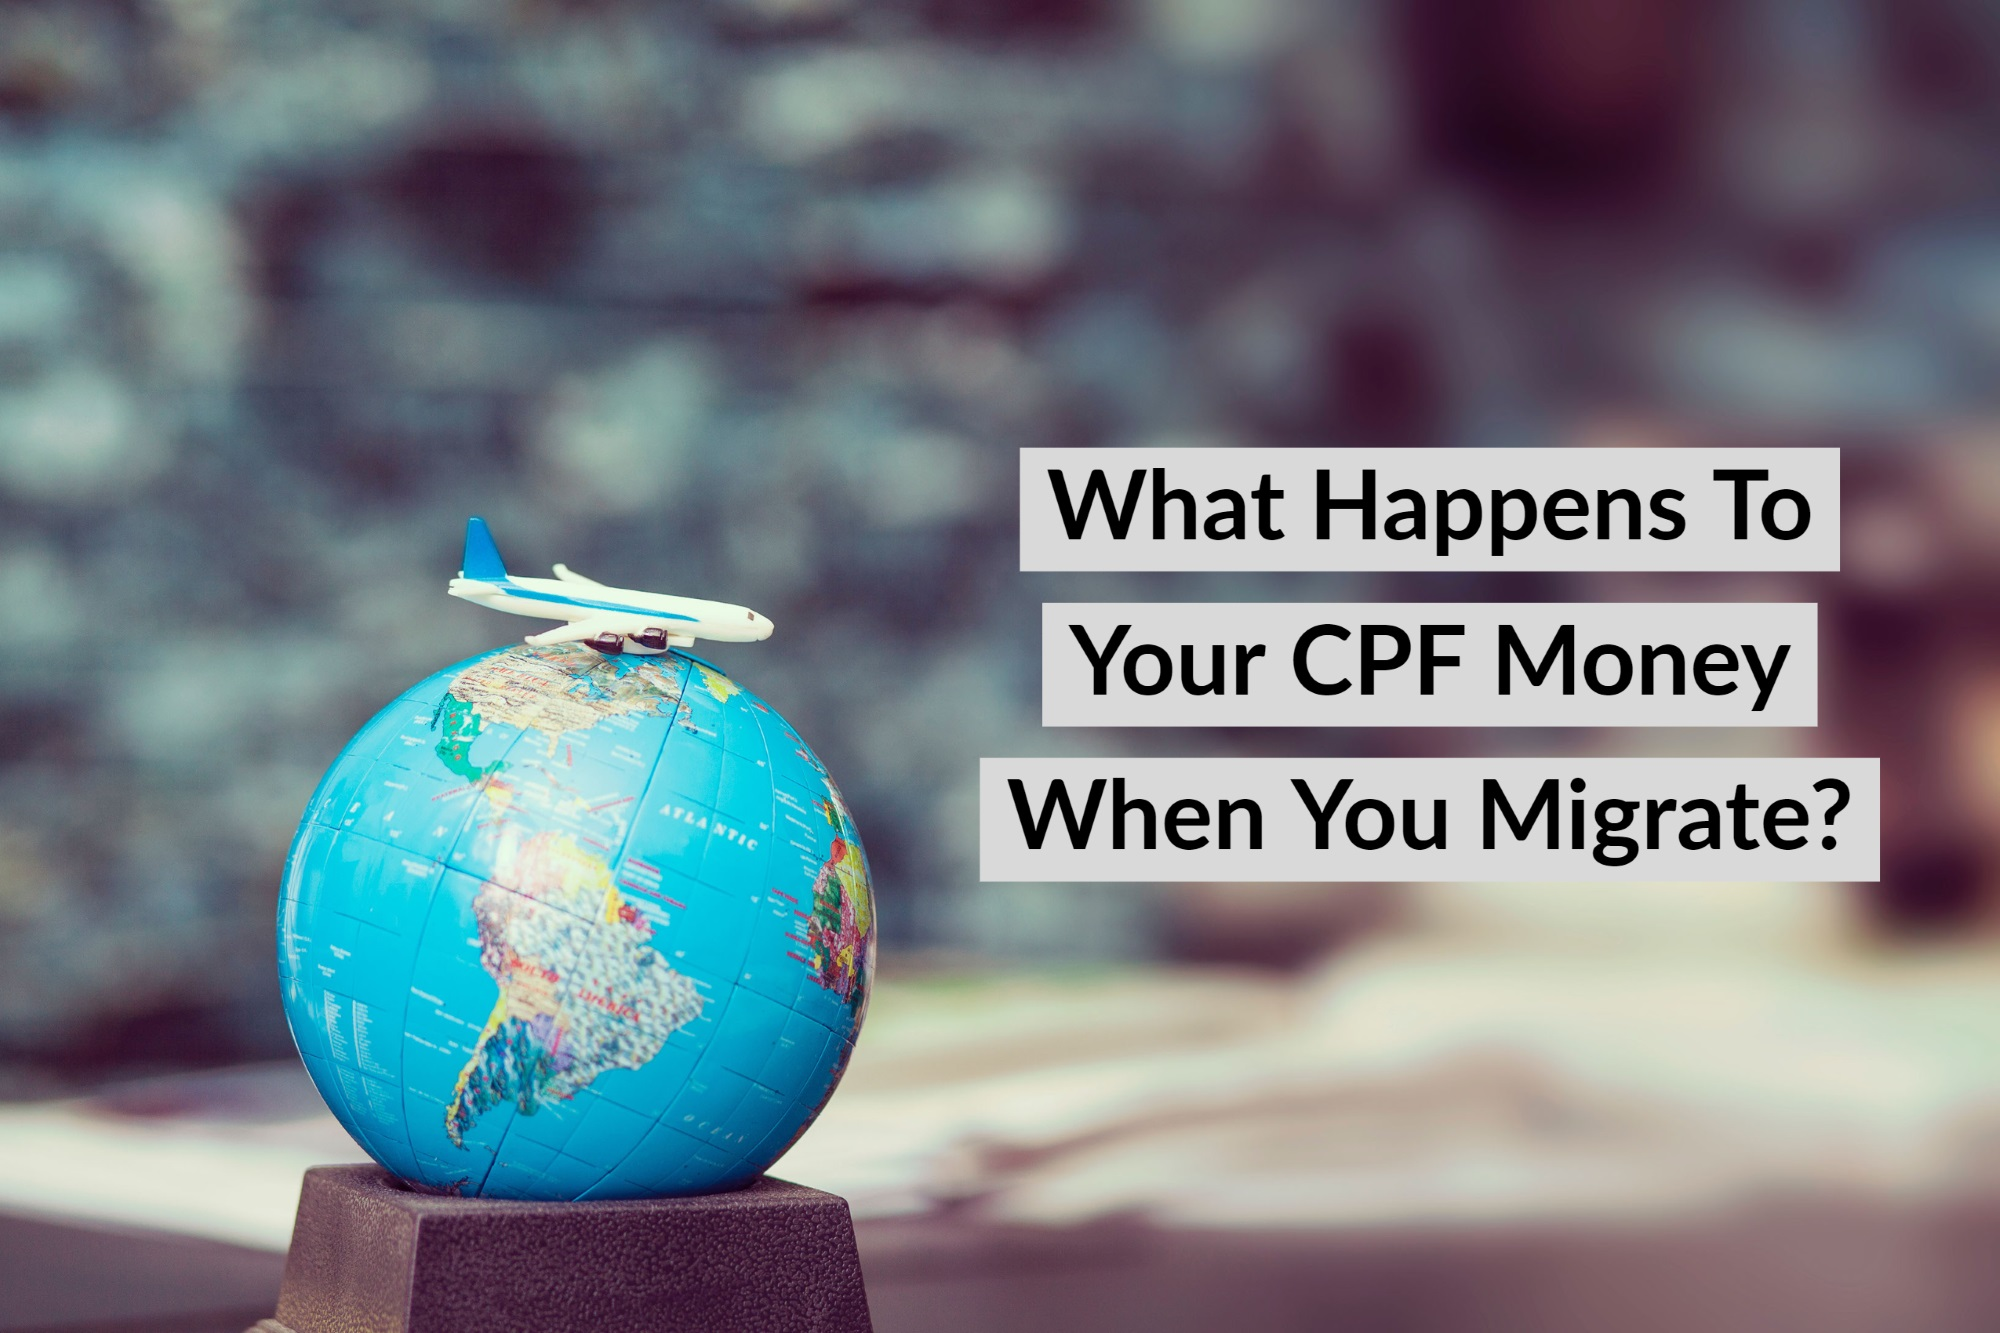 Migrating Overseas Heres What Would Happen To Your CPF Monies